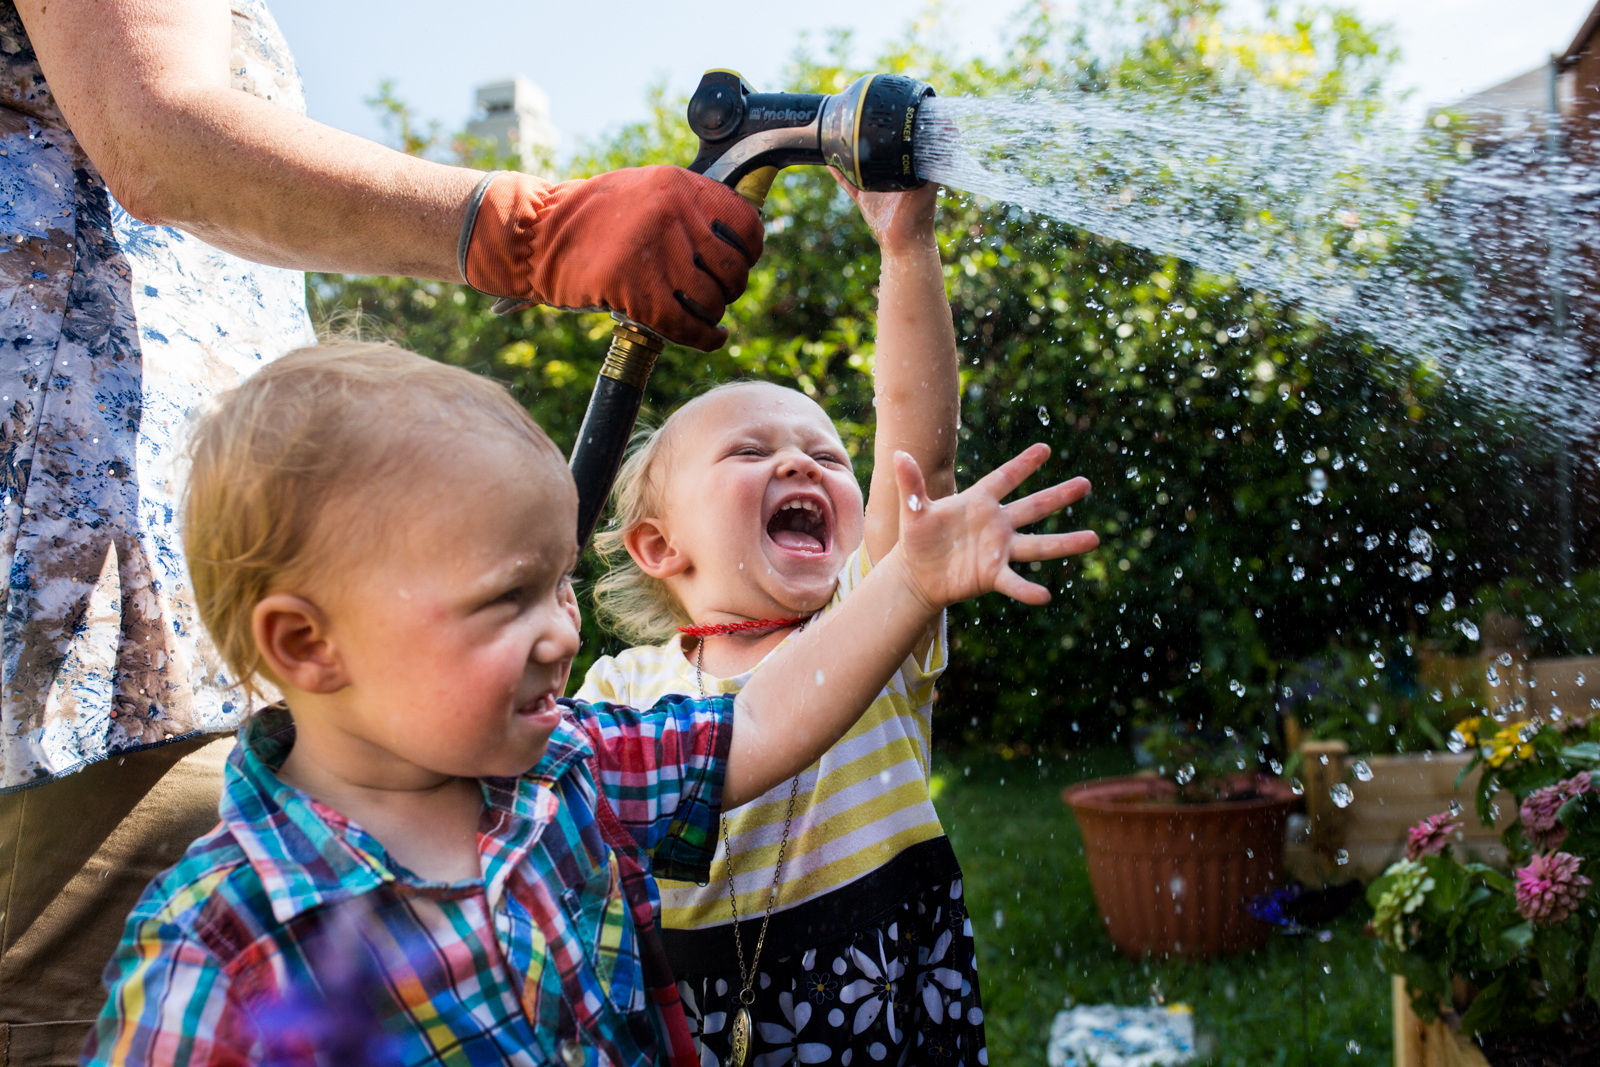 Lawren Rose Photography takes a photo of two year old twins laughing and playing with water in their backyard in McKinney Texas